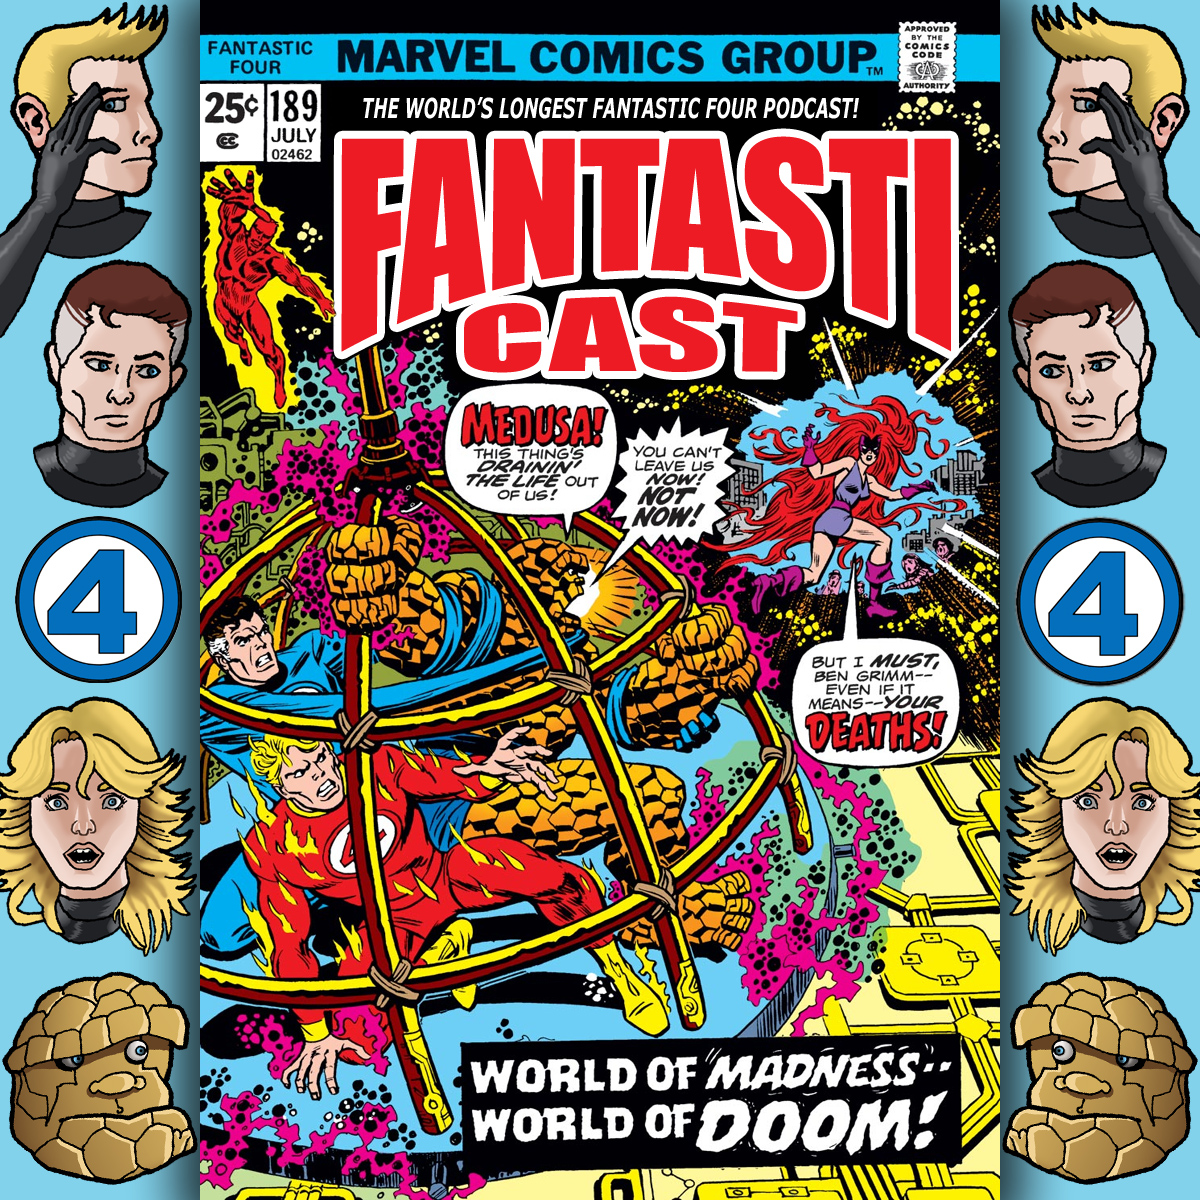 Episode 189: Fantastic Four #152 - A World Of Madness Made